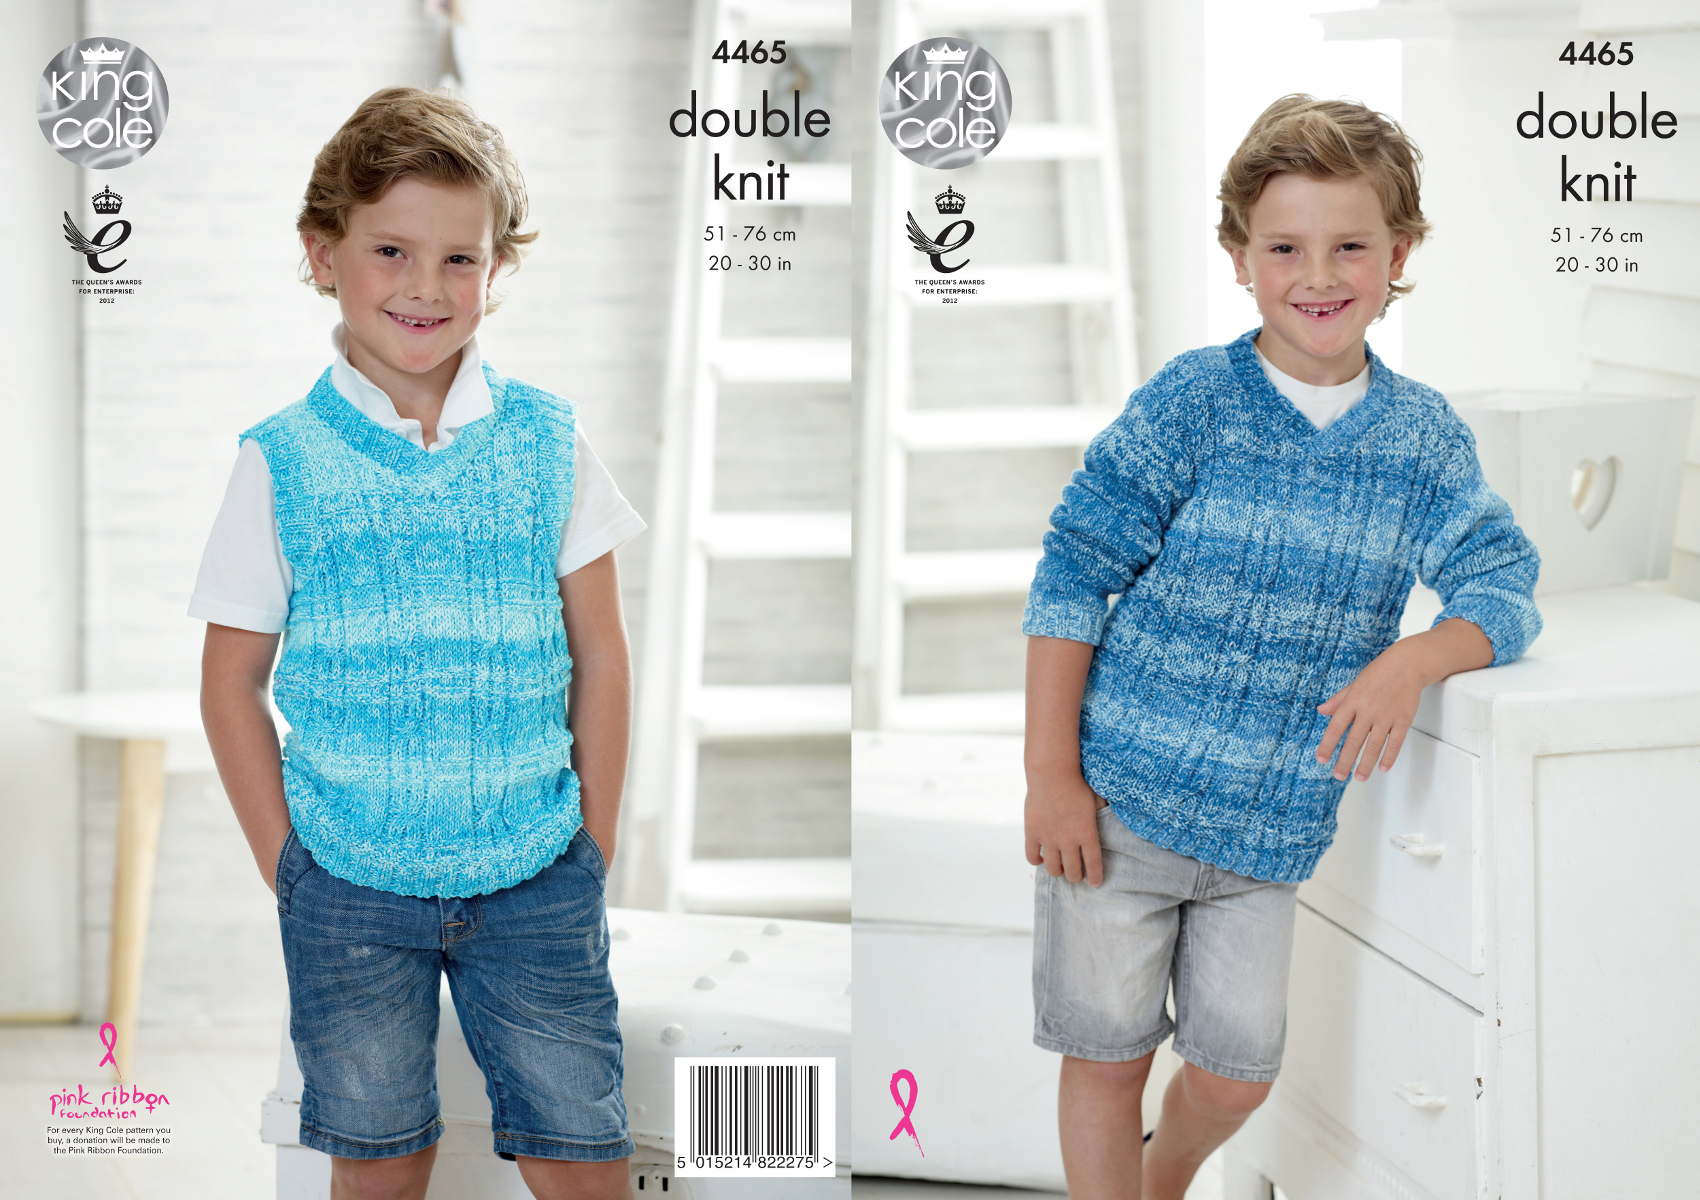 fe108084748 Details about King Cole Boys Double Knitting Pattern V Neck Sweater & Tank  Top Vogue DK 4465